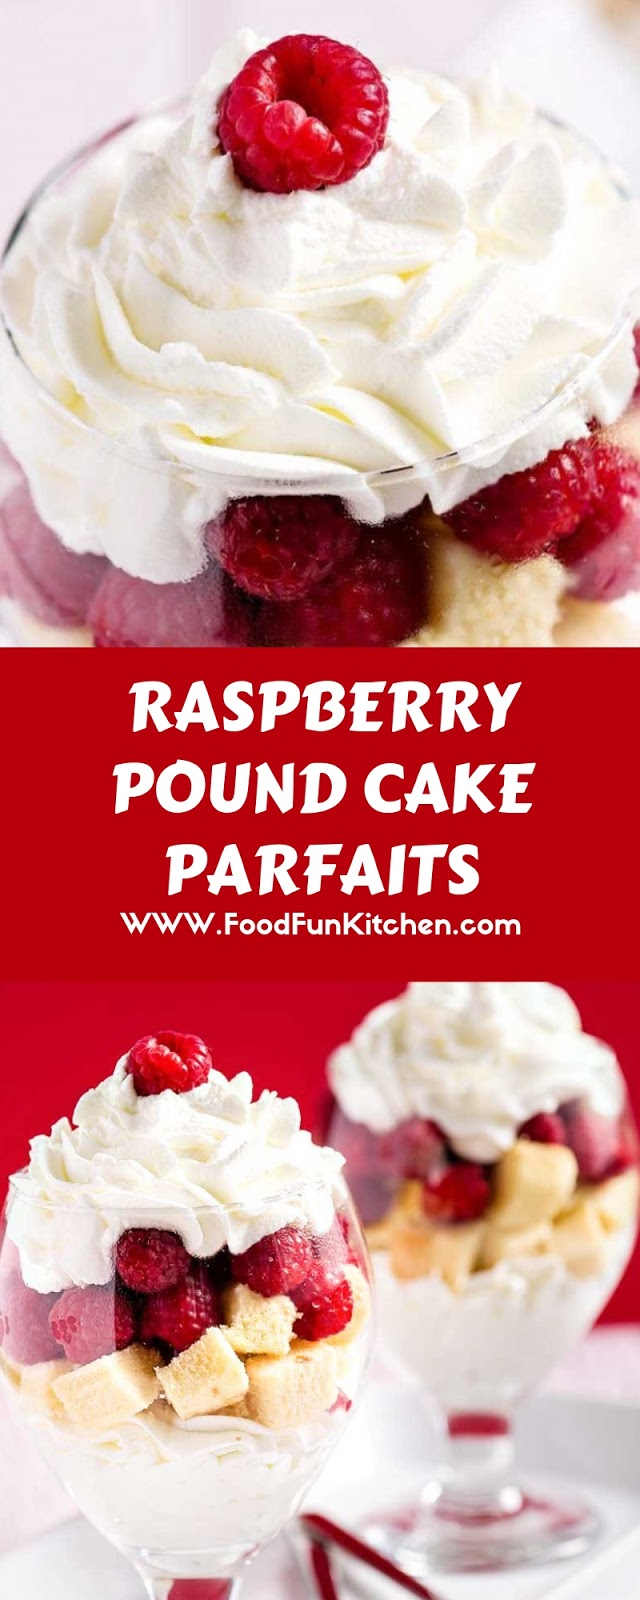 RASPBERRY POUND CAKE PARFAITS